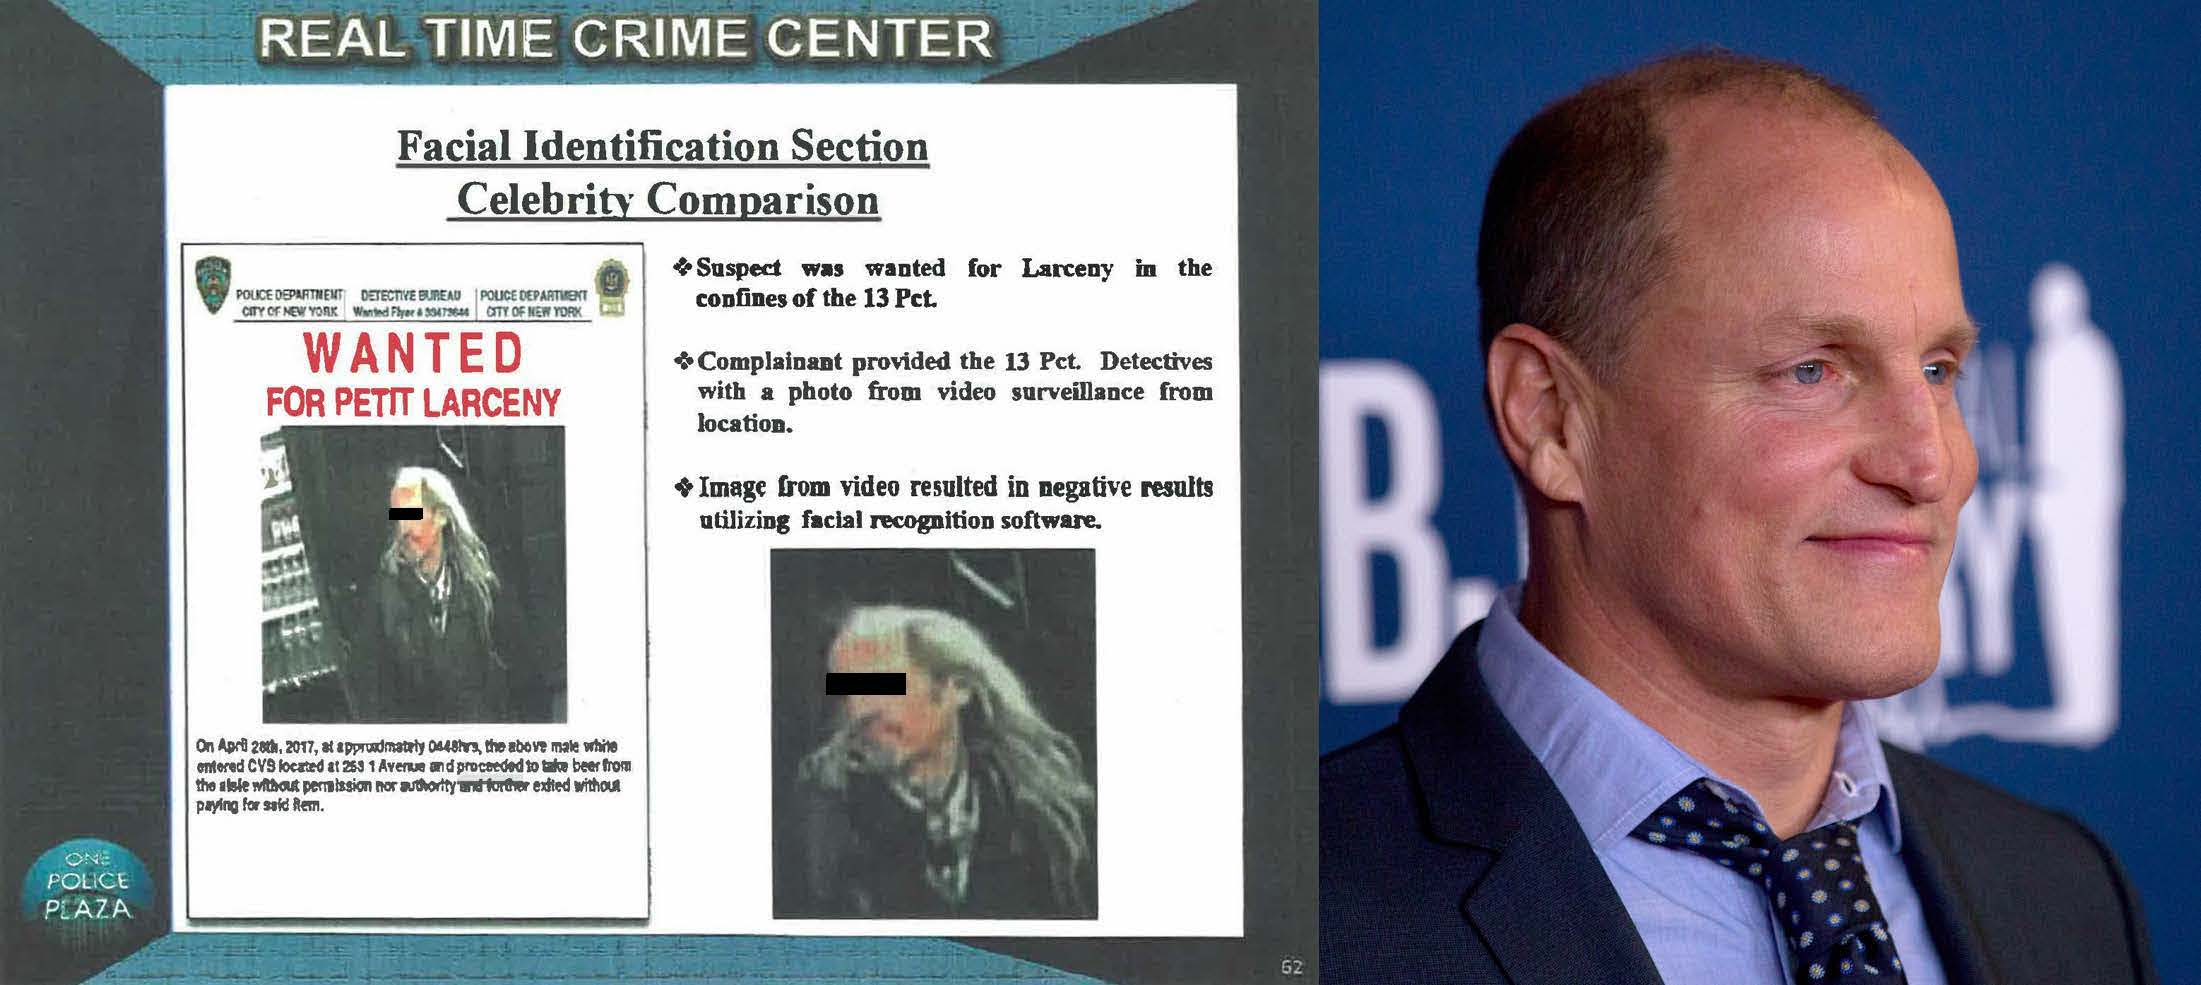 NYPD used a photo of Woody Harrelson to identify an alleged robbery suspect.